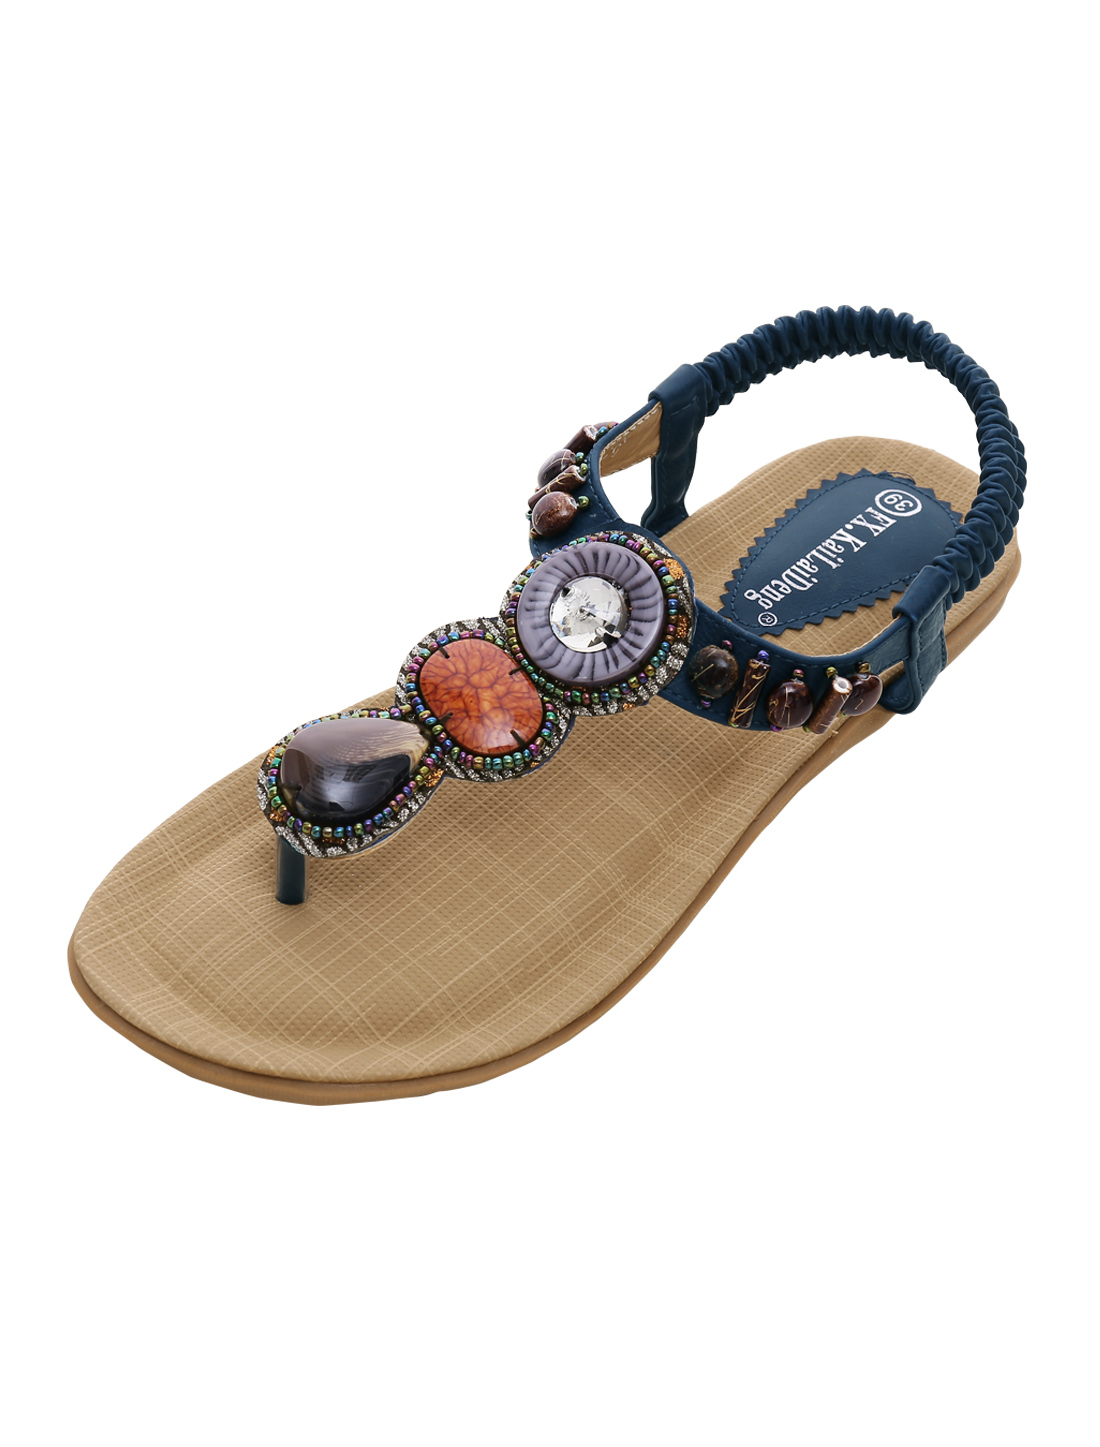 Woman Beads Decor Elastic Strap Summer Sandals Navy Blue US 8